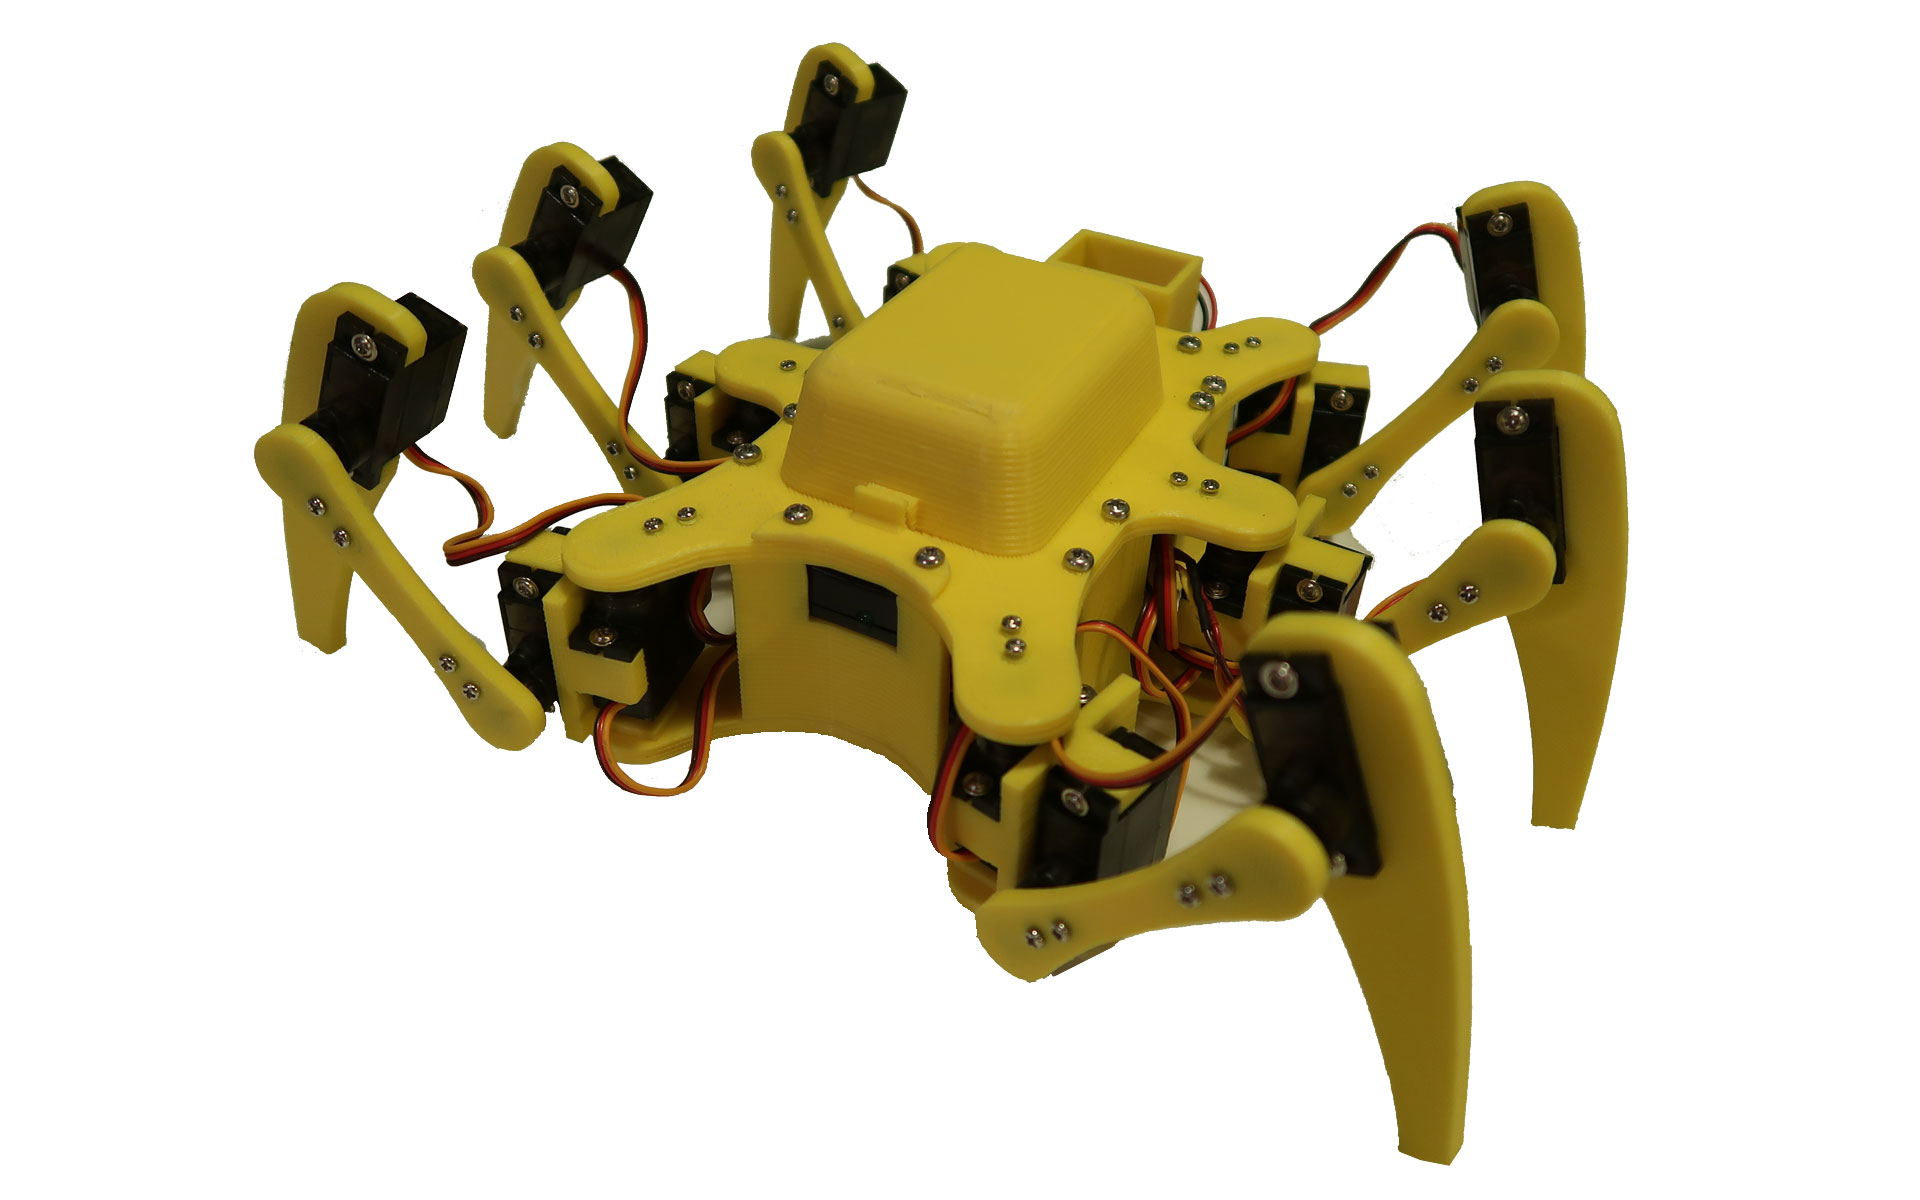 Picture of 3D Printed 18DOF Hexapod